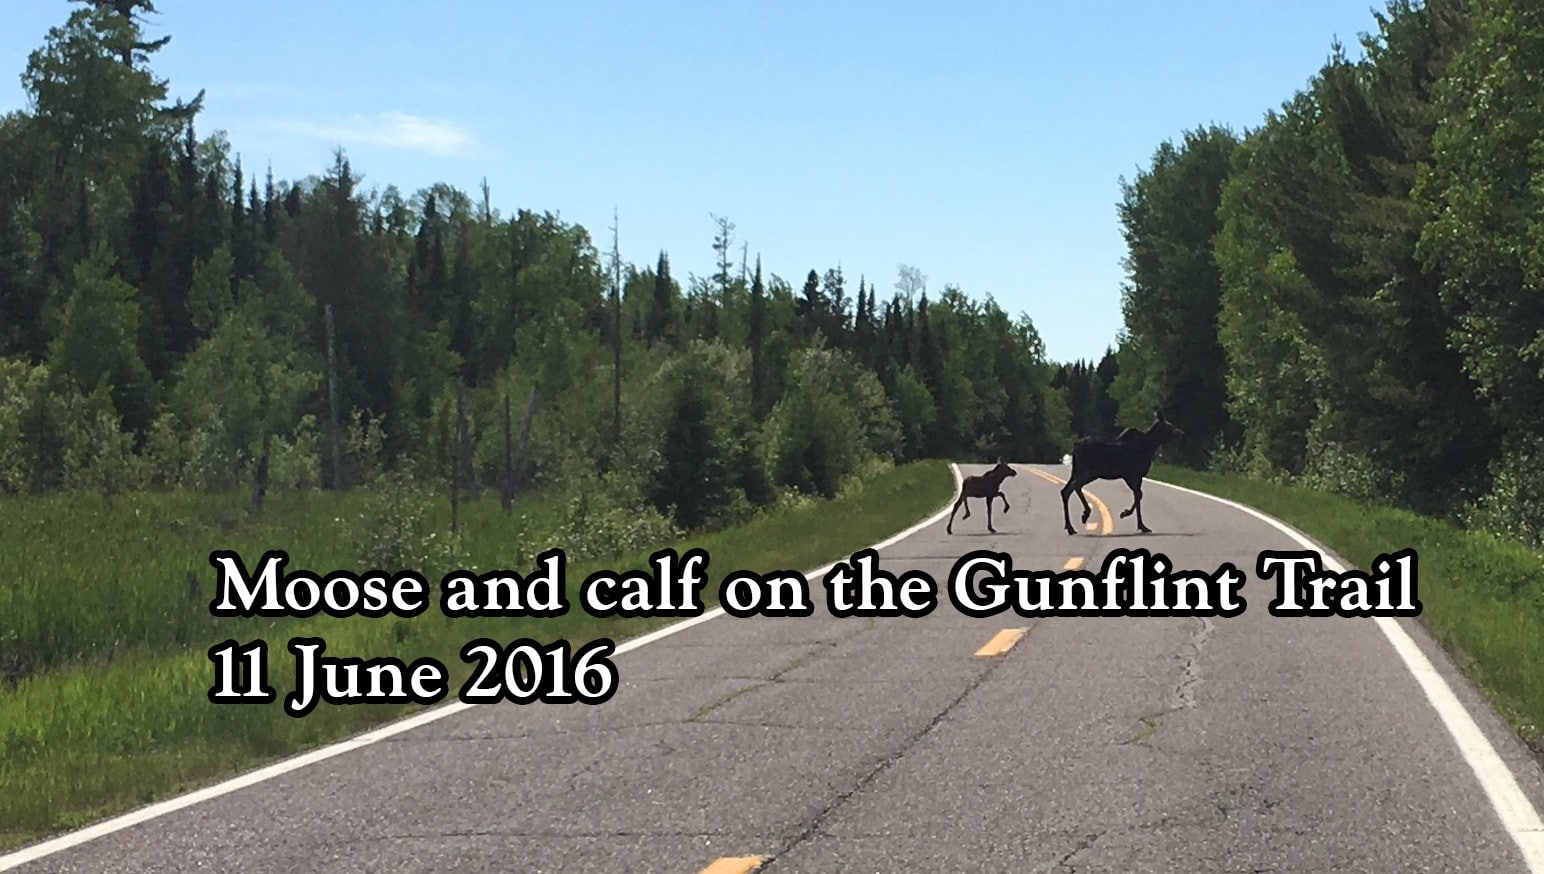 Moose and calf on Gunflint Trail